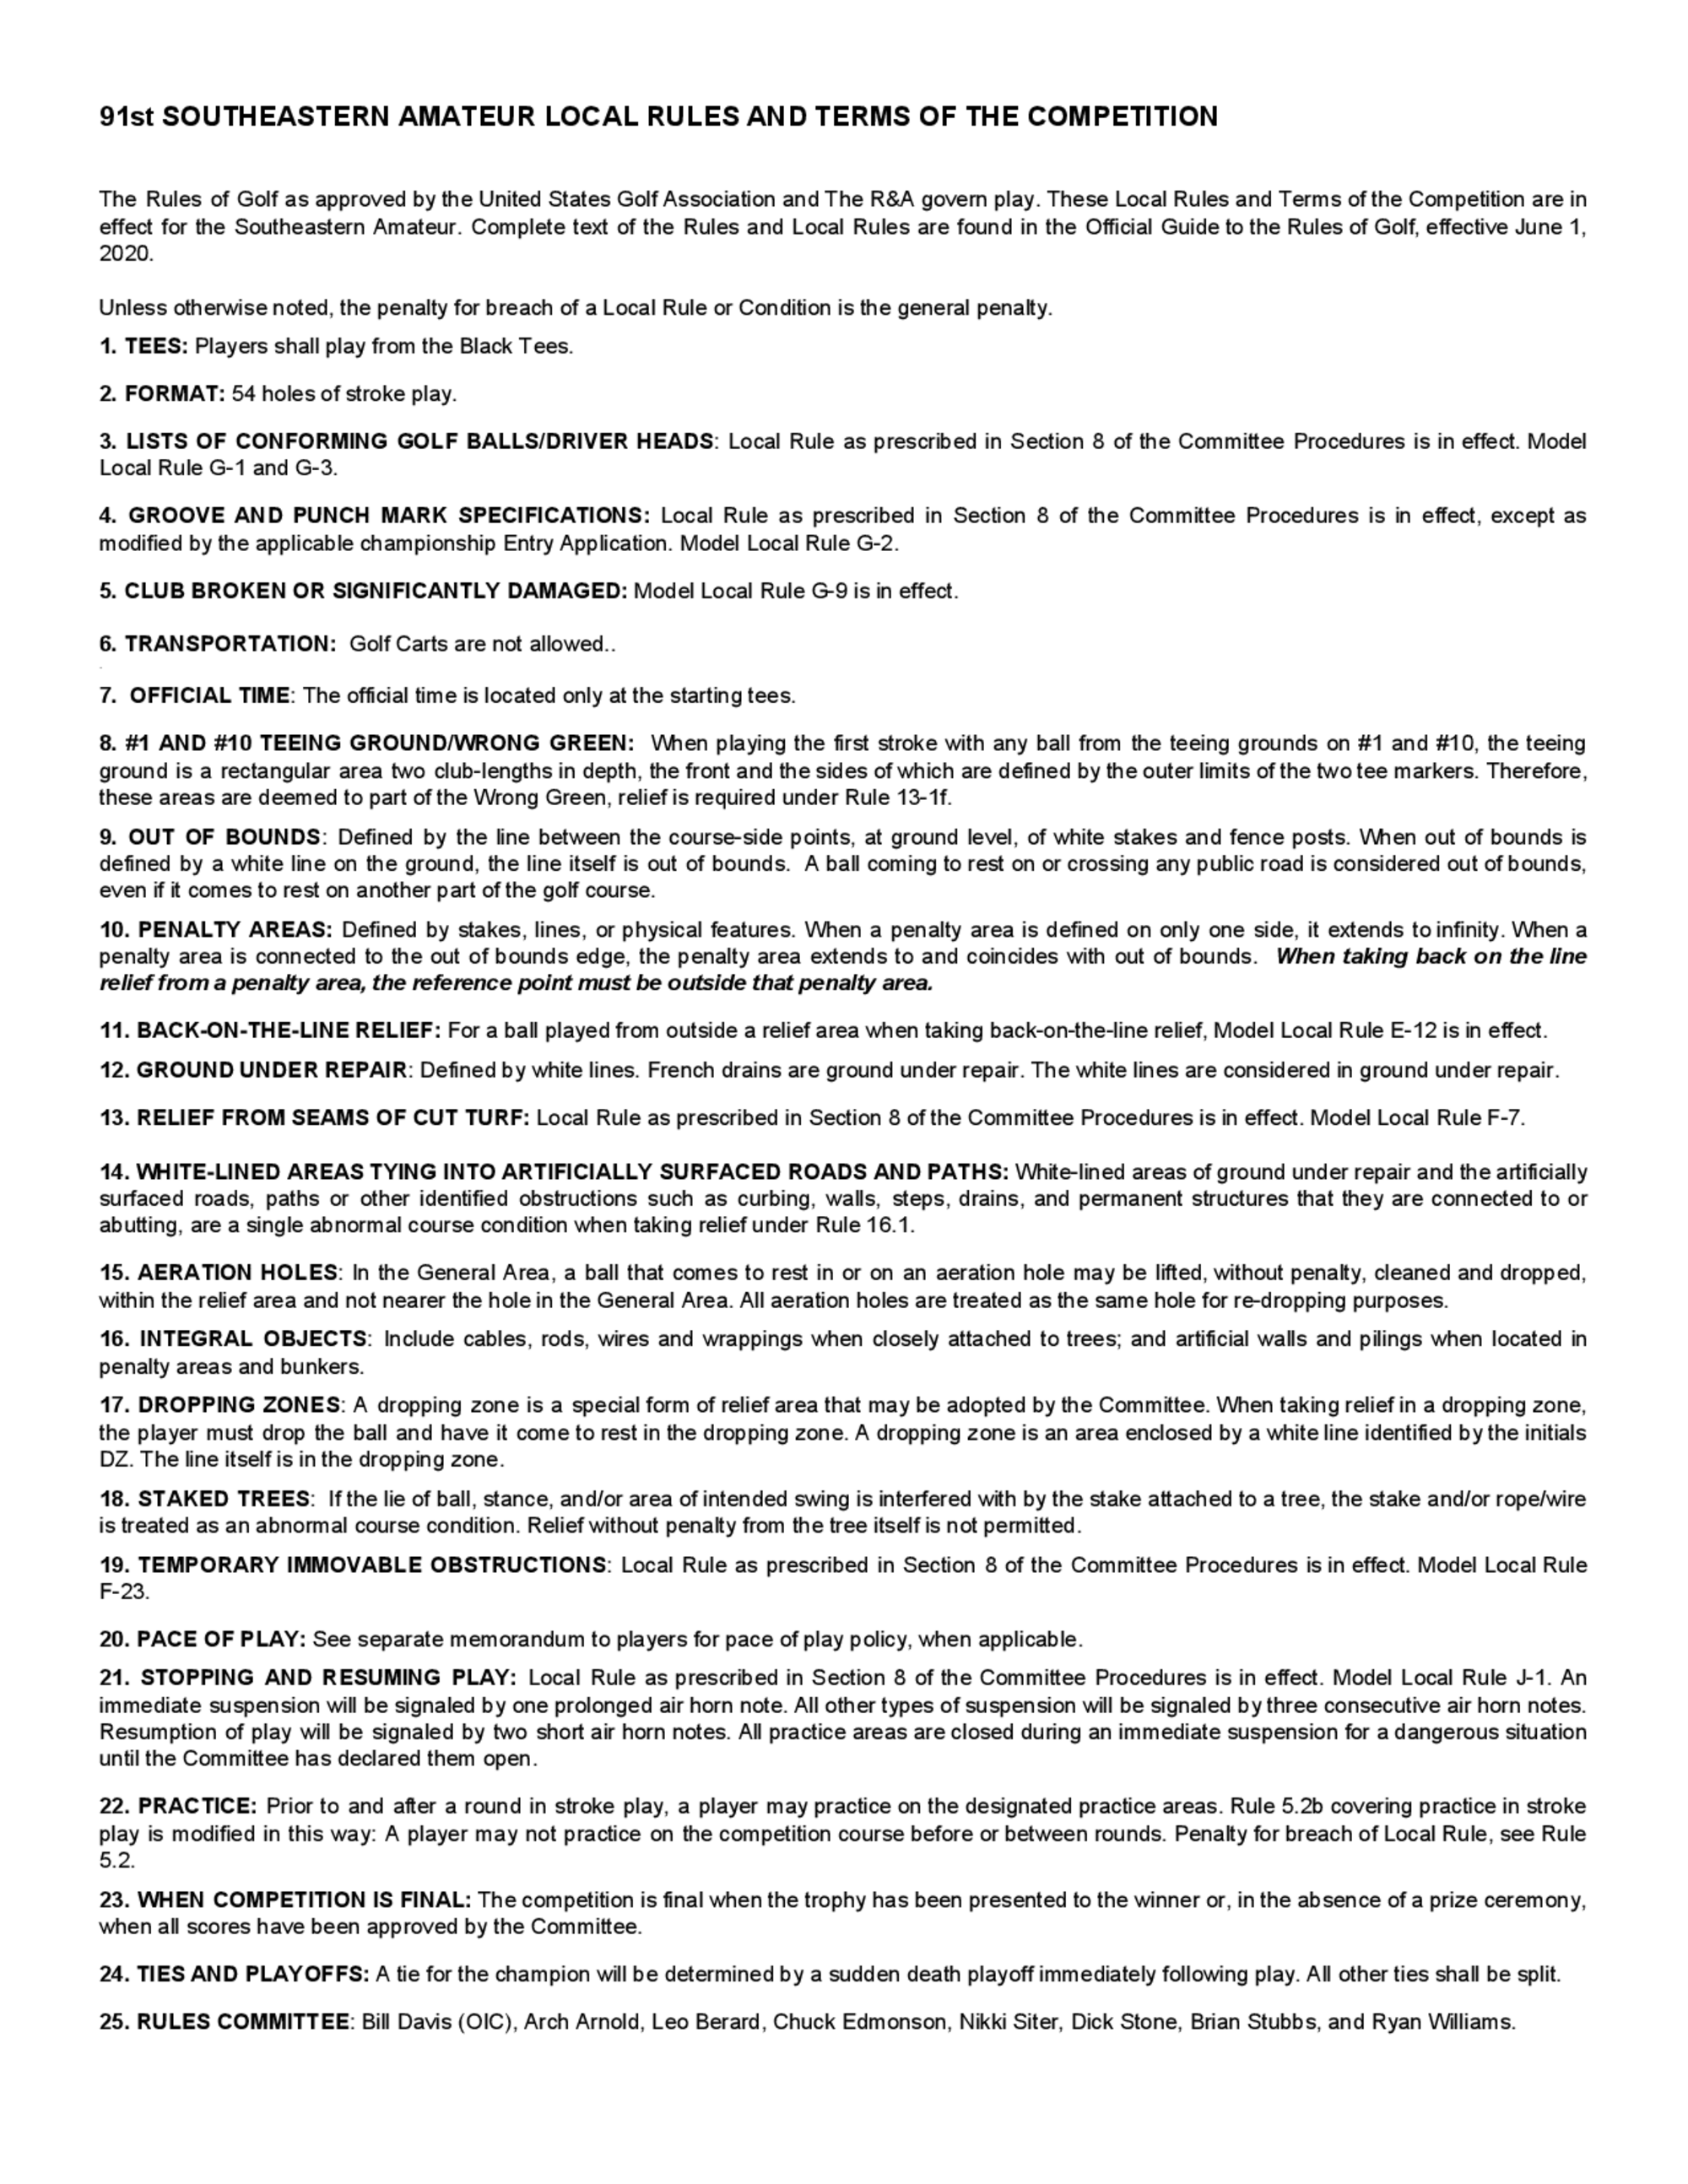 Local rules and conditions 1